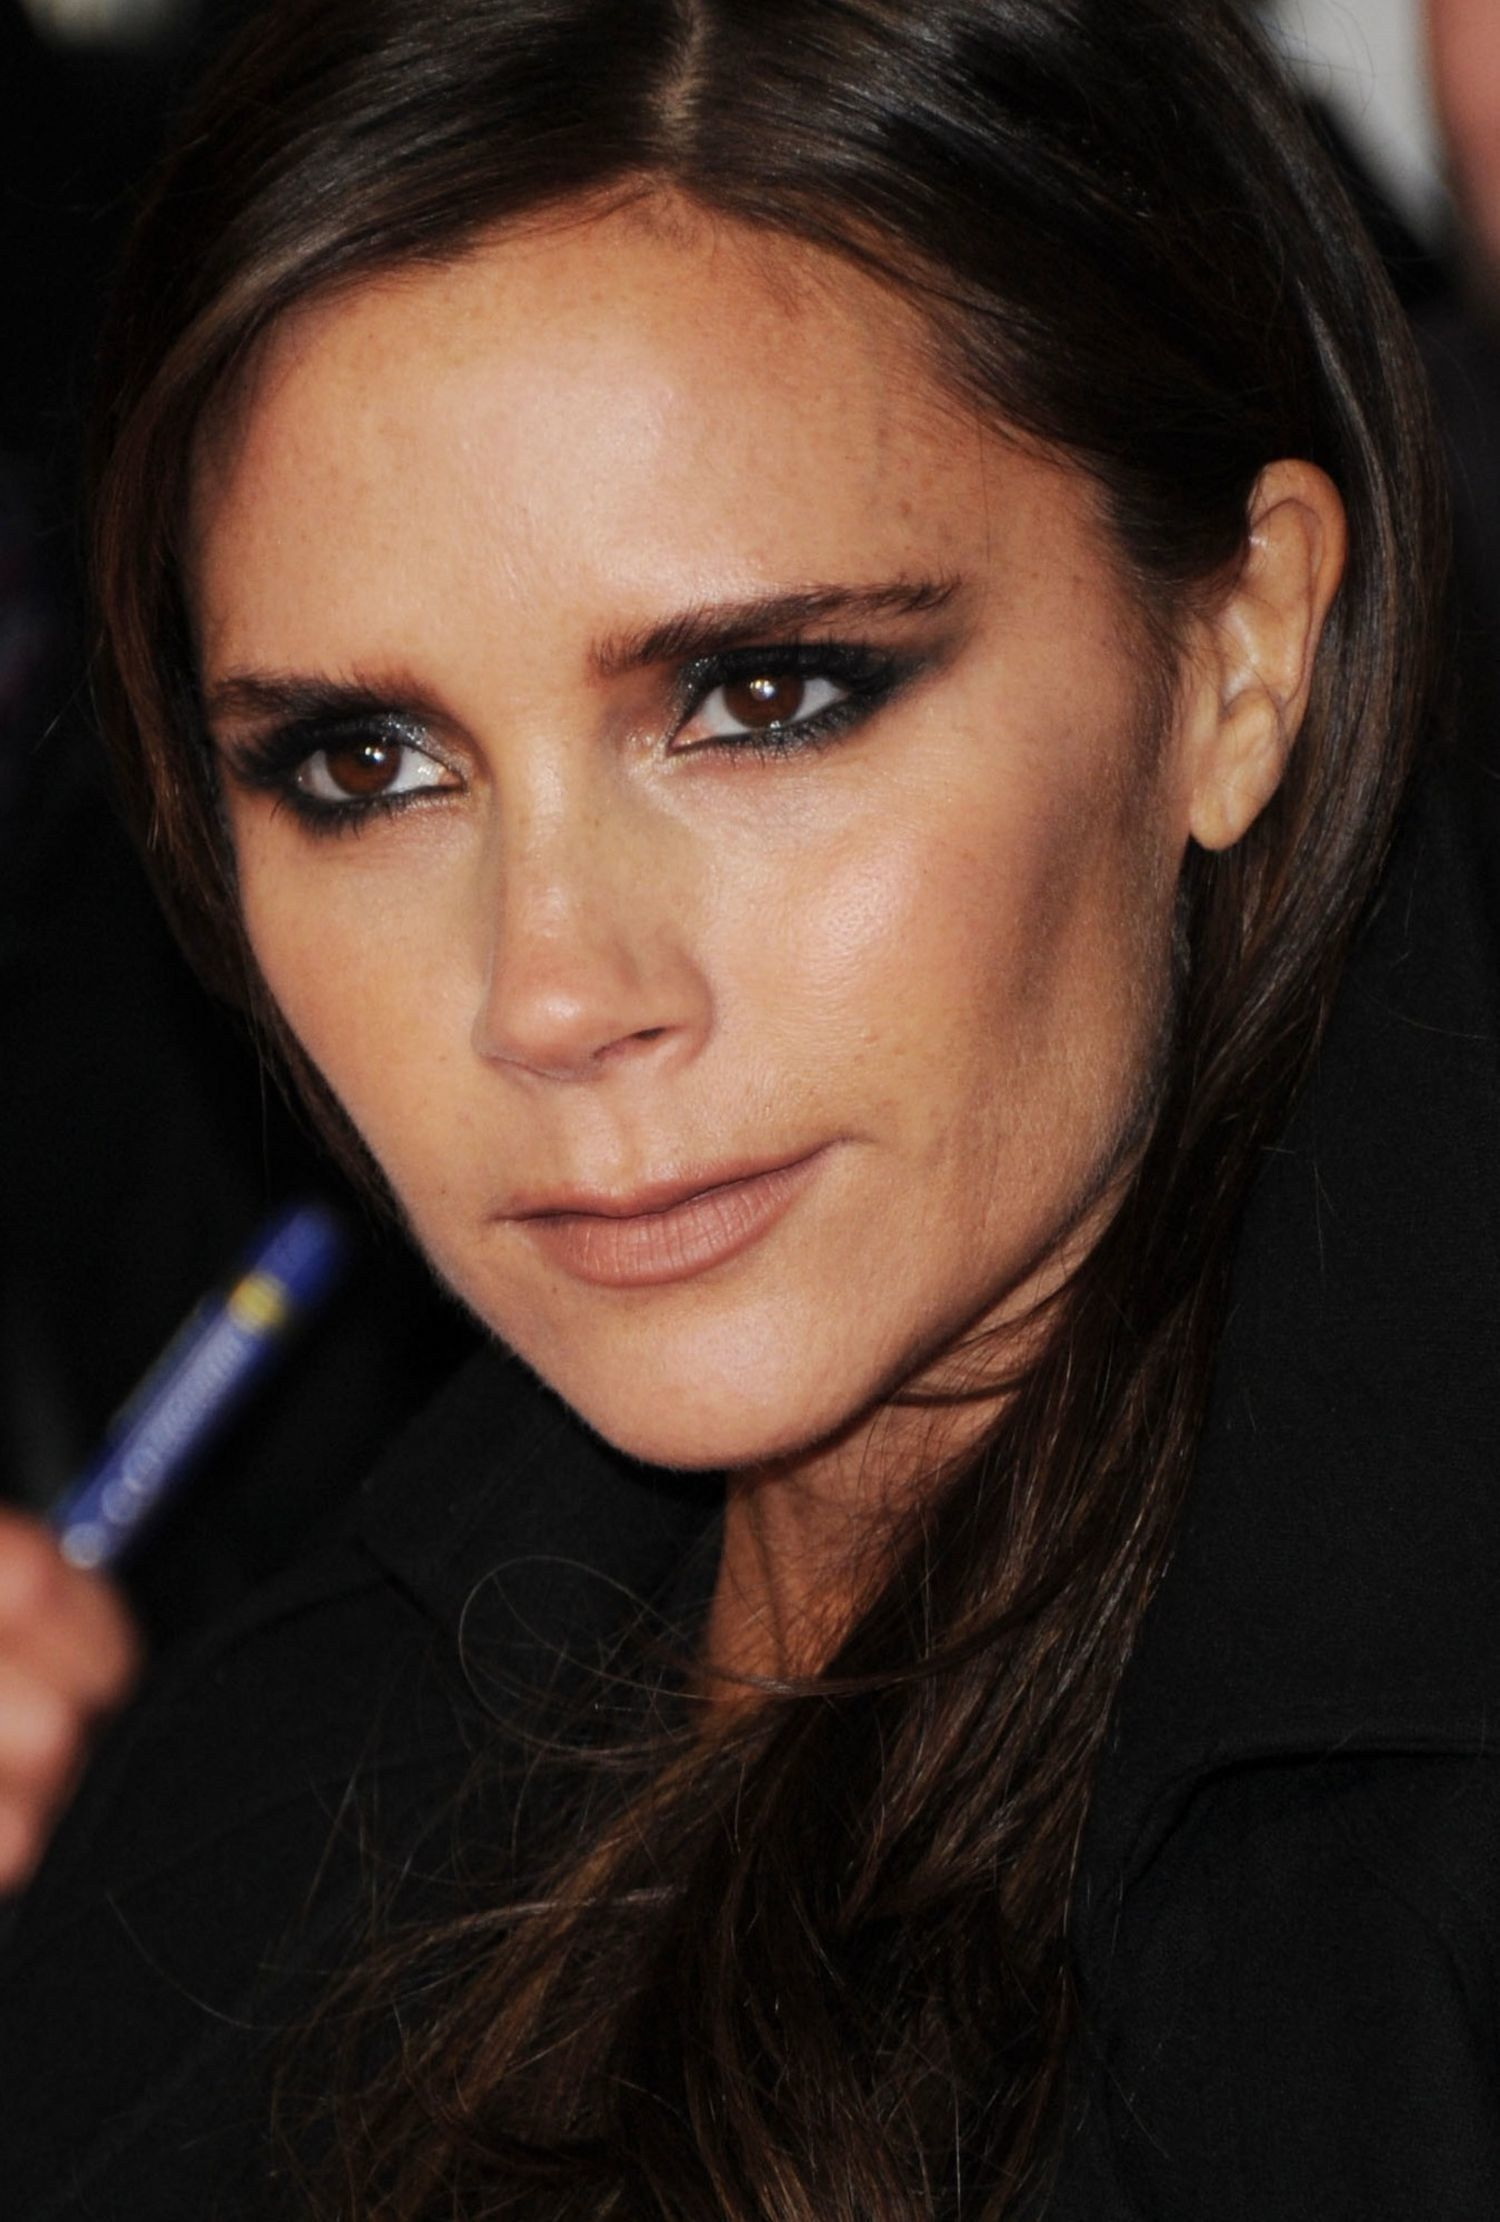 Victoria Beckham Beauty Is On The Way